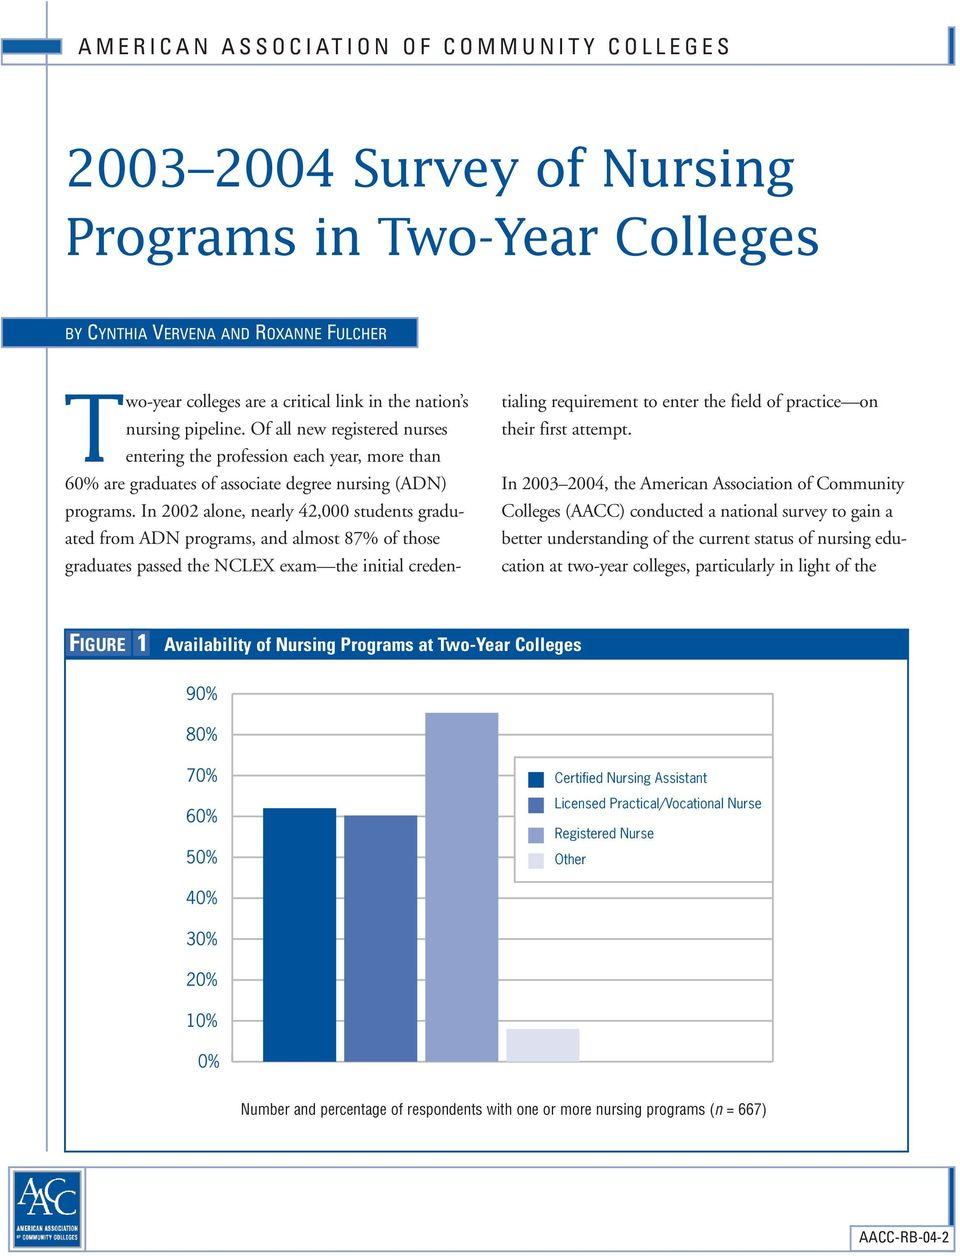 In 2002 alone, nearly 42,000 students graduated from ADN programs, and almost 87% of those graduates passed the NCLEX exam the initial credentialing requirement to enter the field of practice on